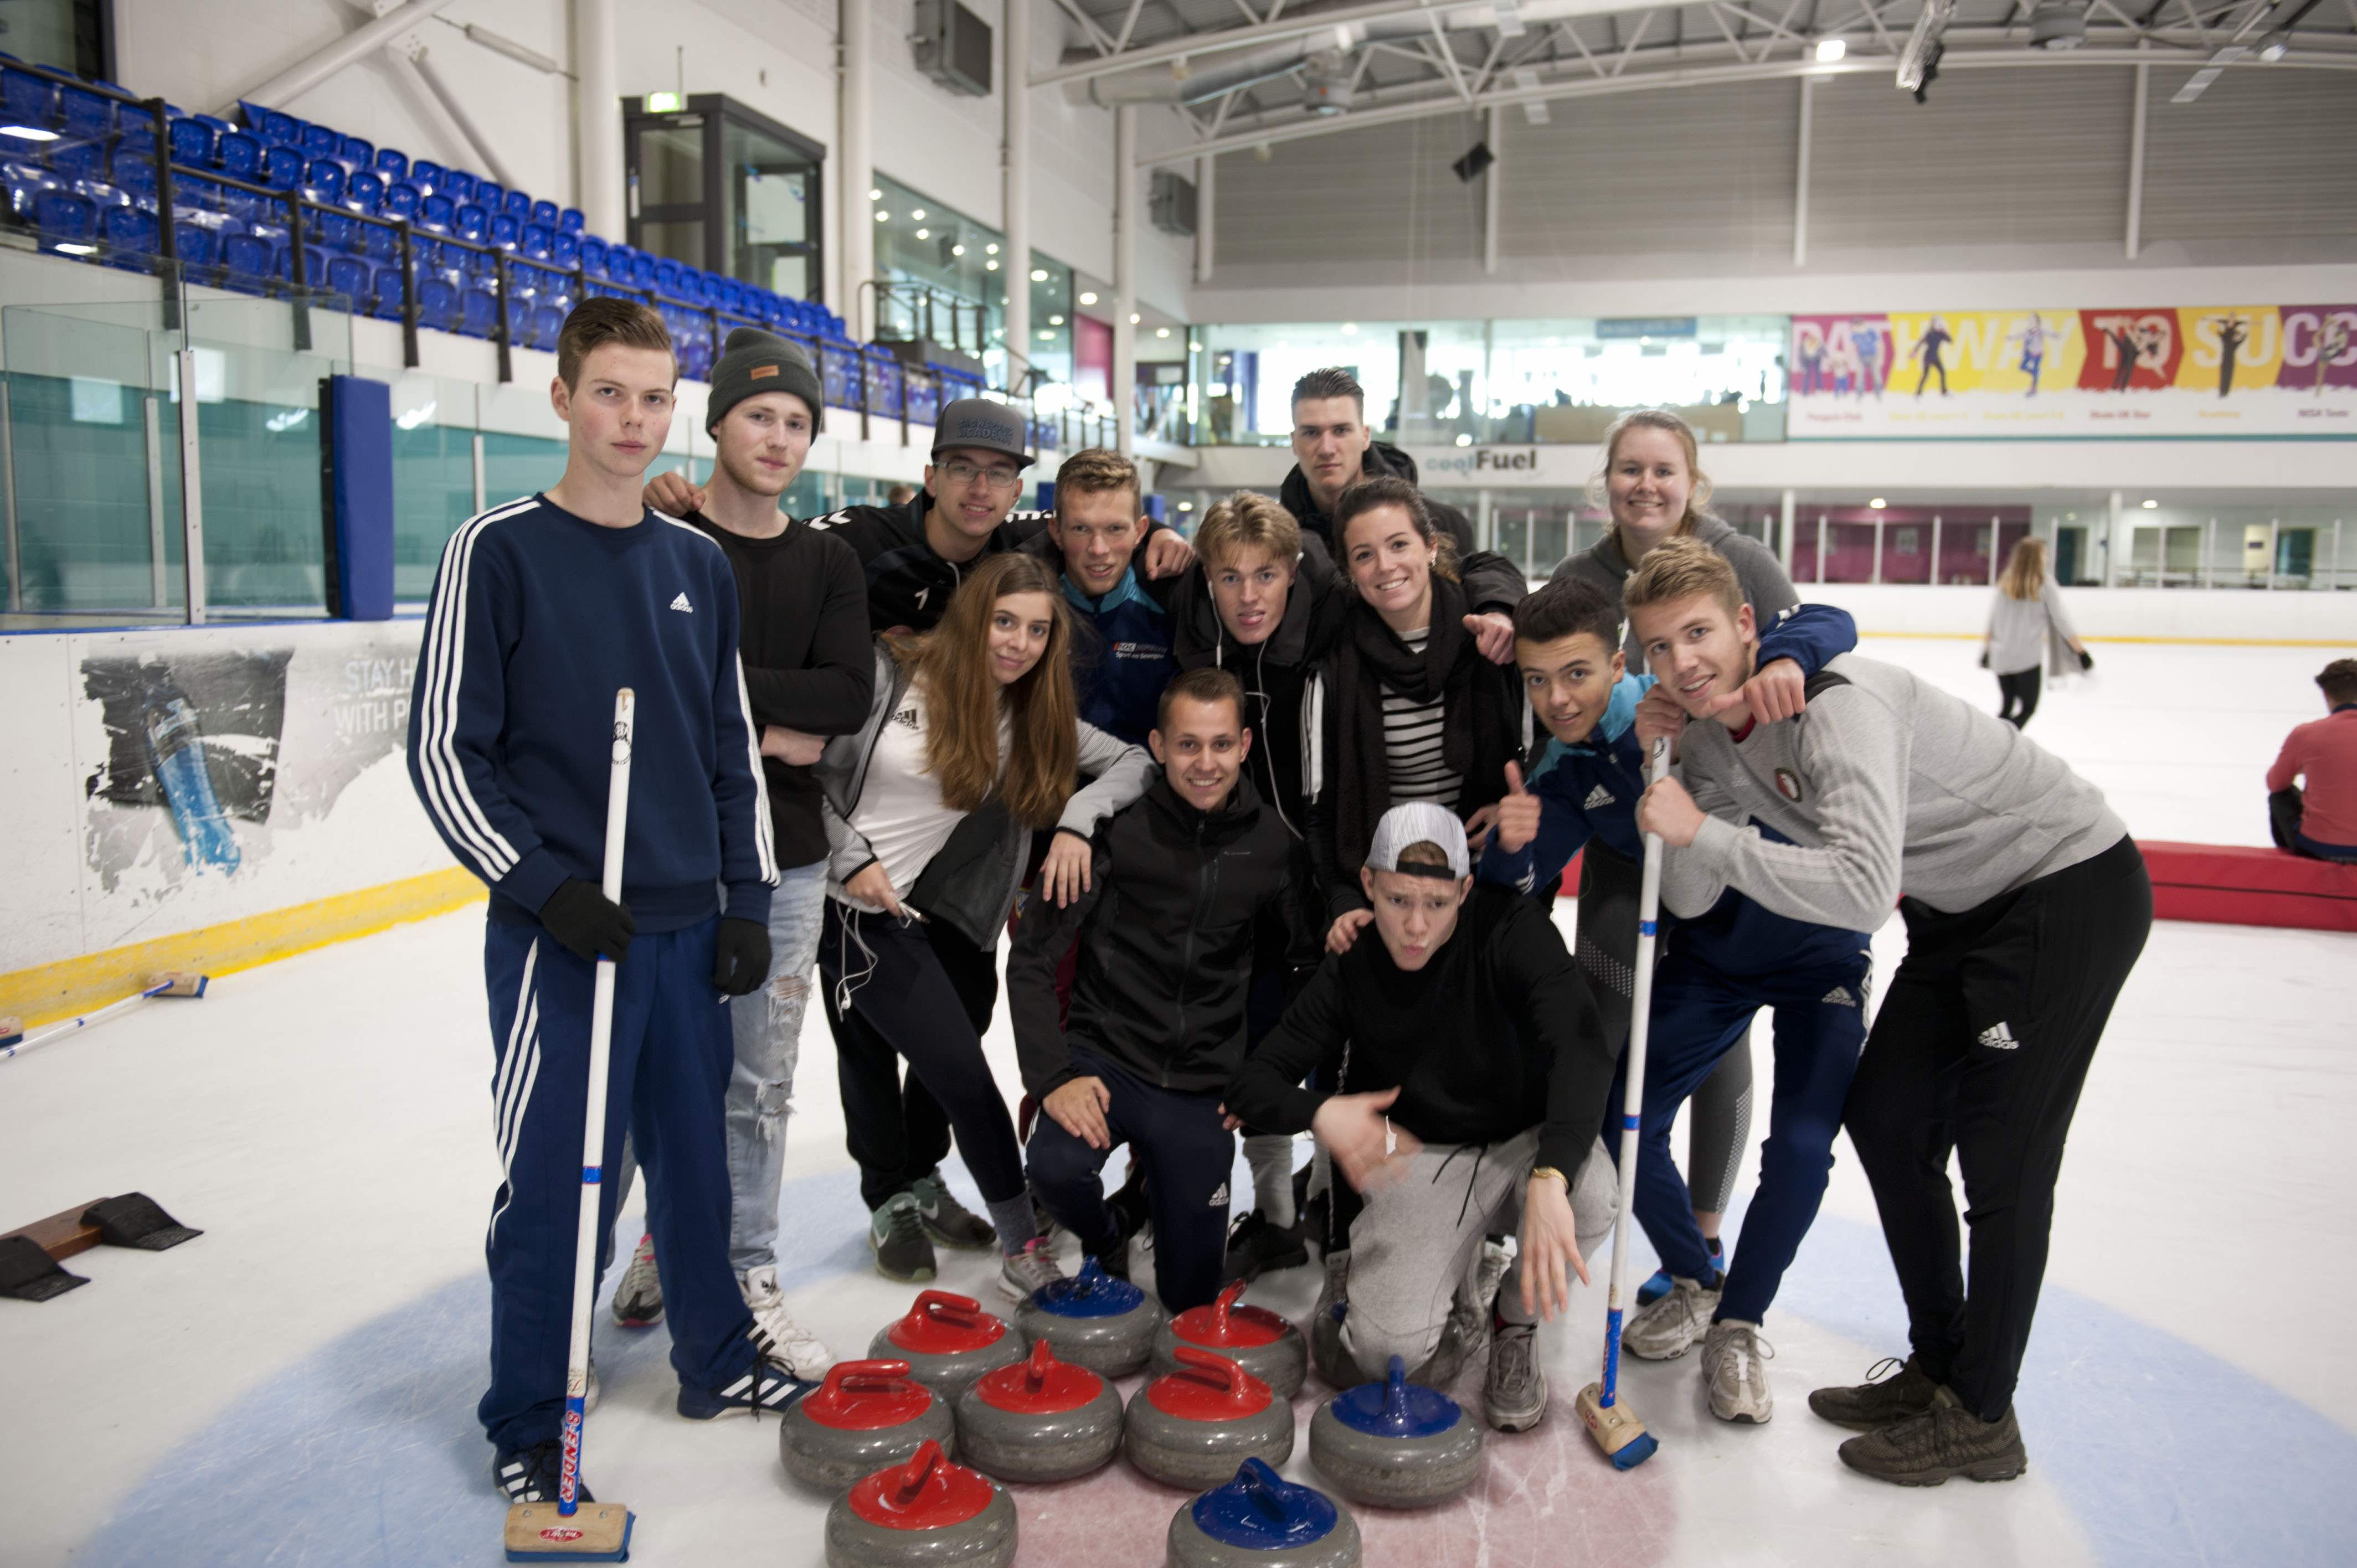 European Students Benefit From Sporting Programme In Sheffield